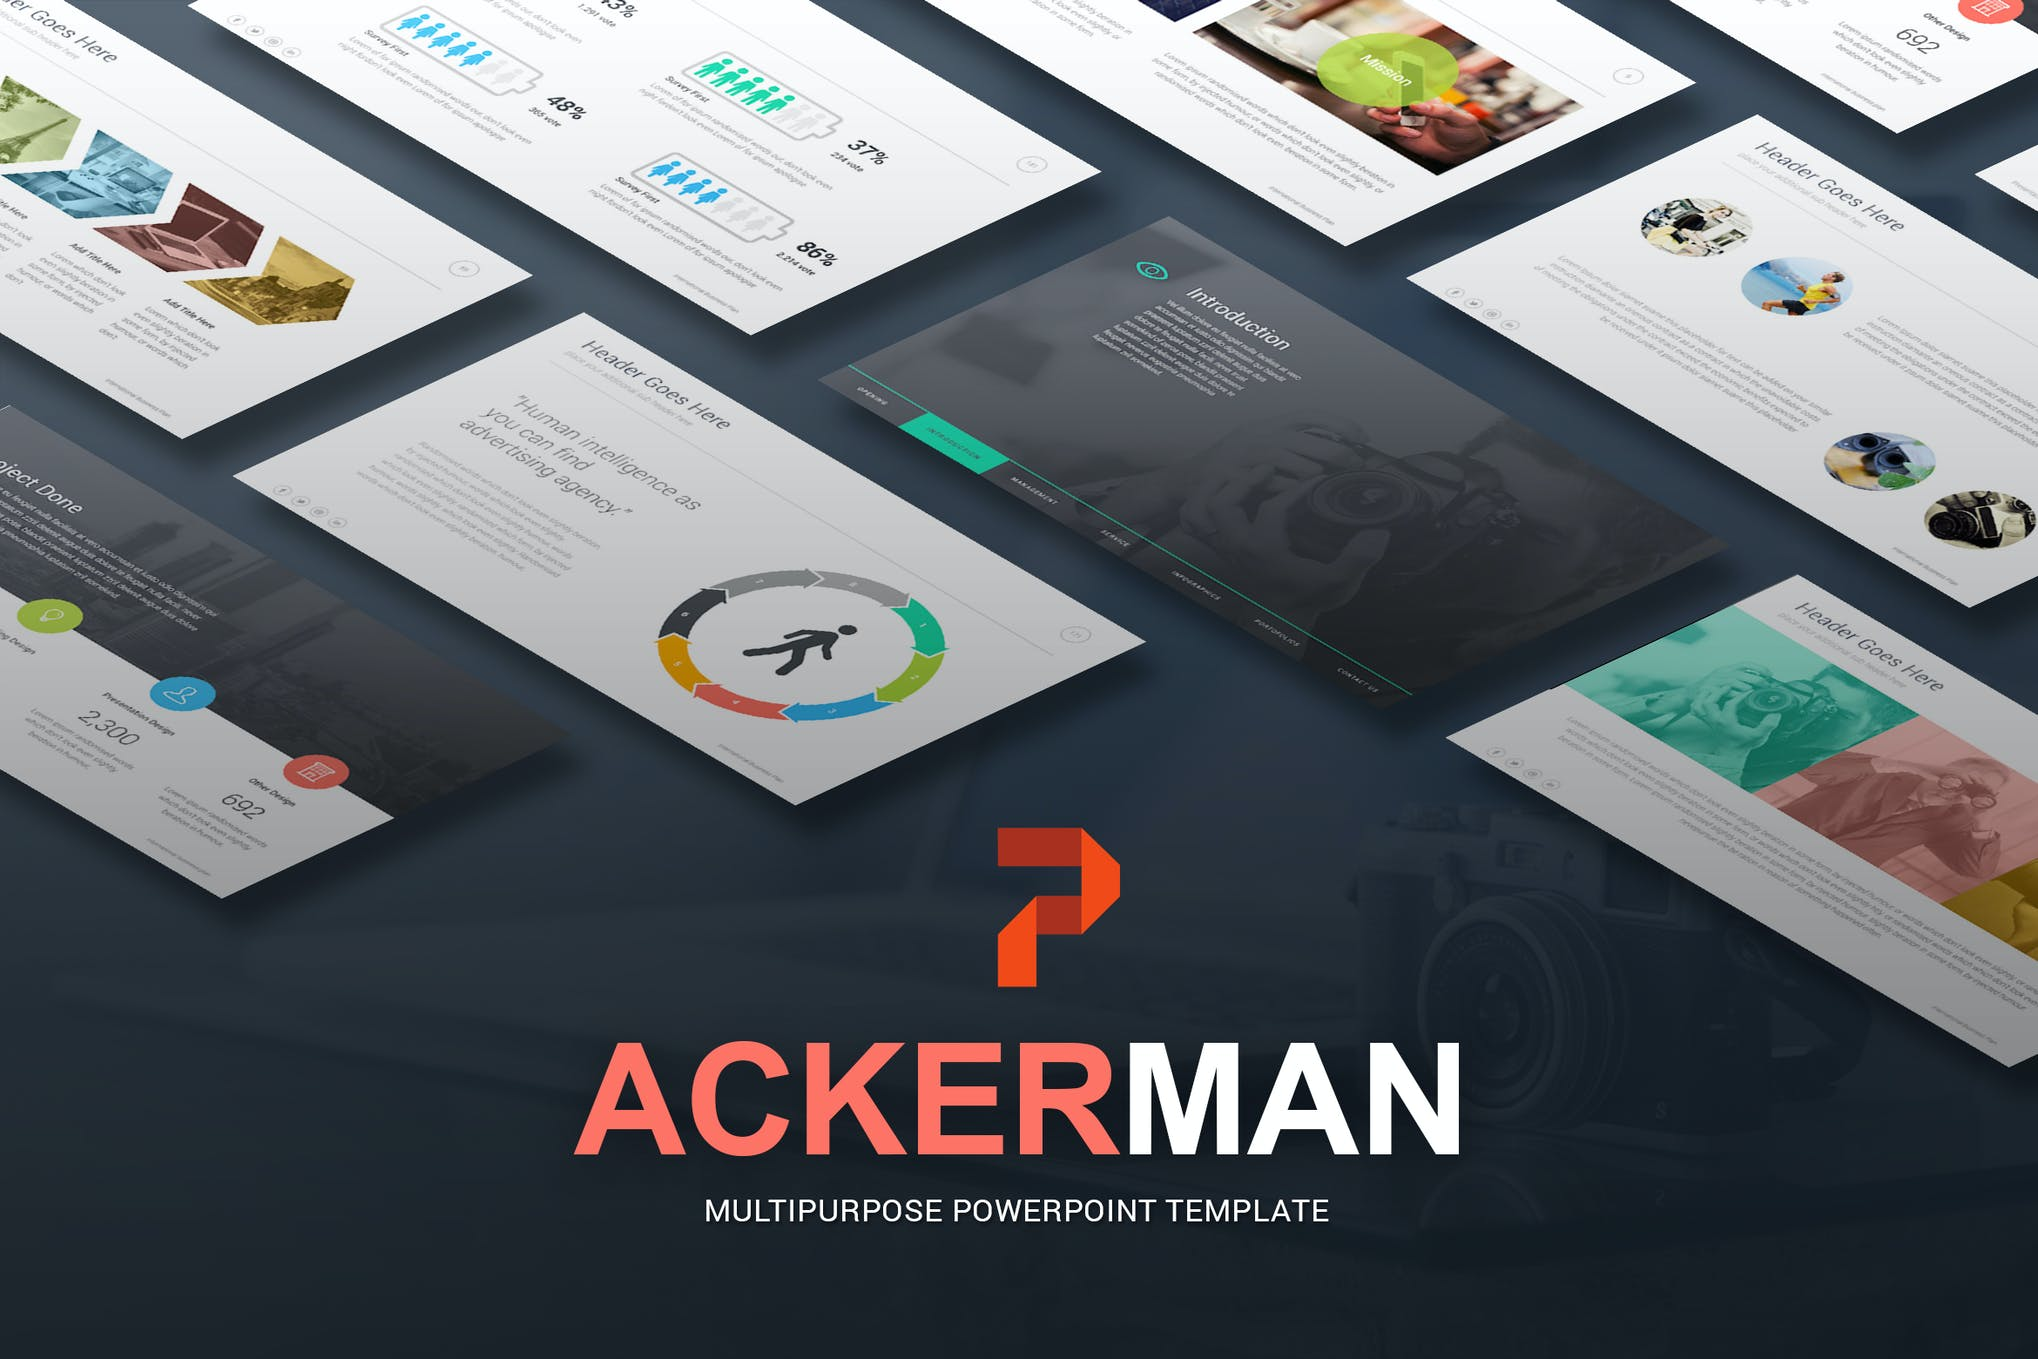 Ackerman - Multipurpose Powerpoint Template